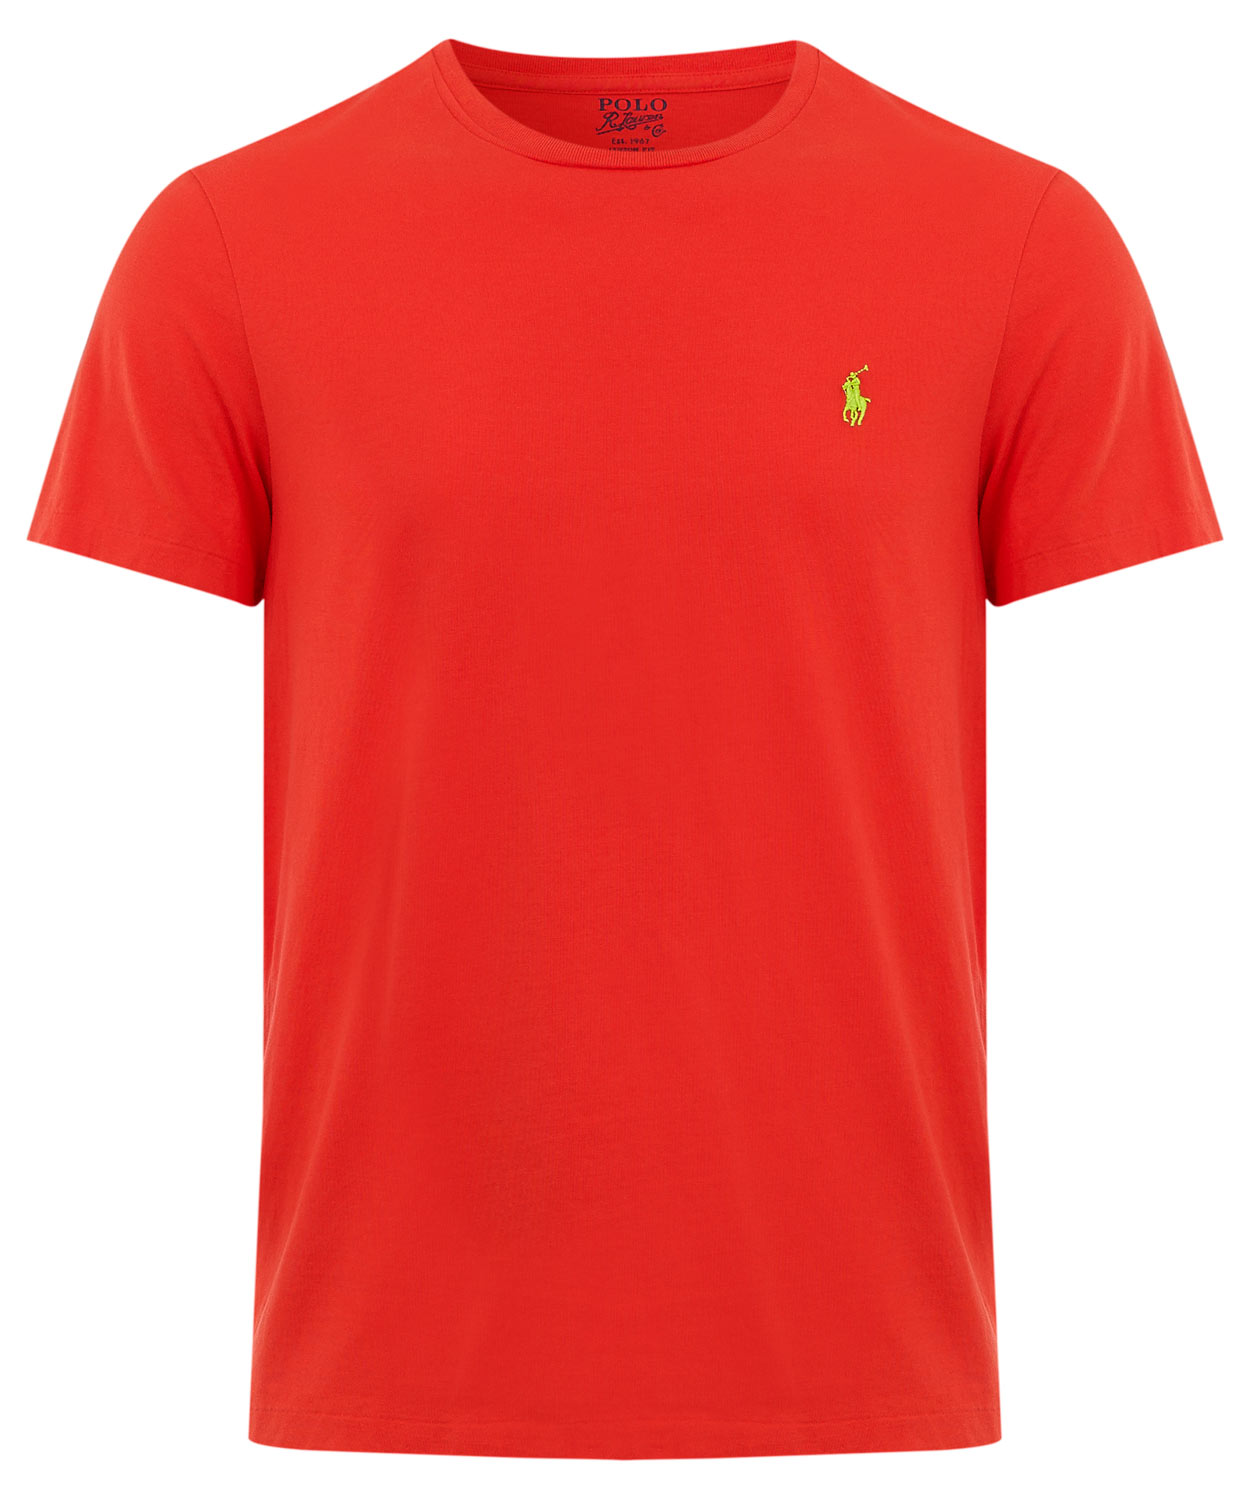 polo ralph lauren red crew neck cotton t shirt in red for. Black Bedroom Furniture Sets. Home Design Ideas